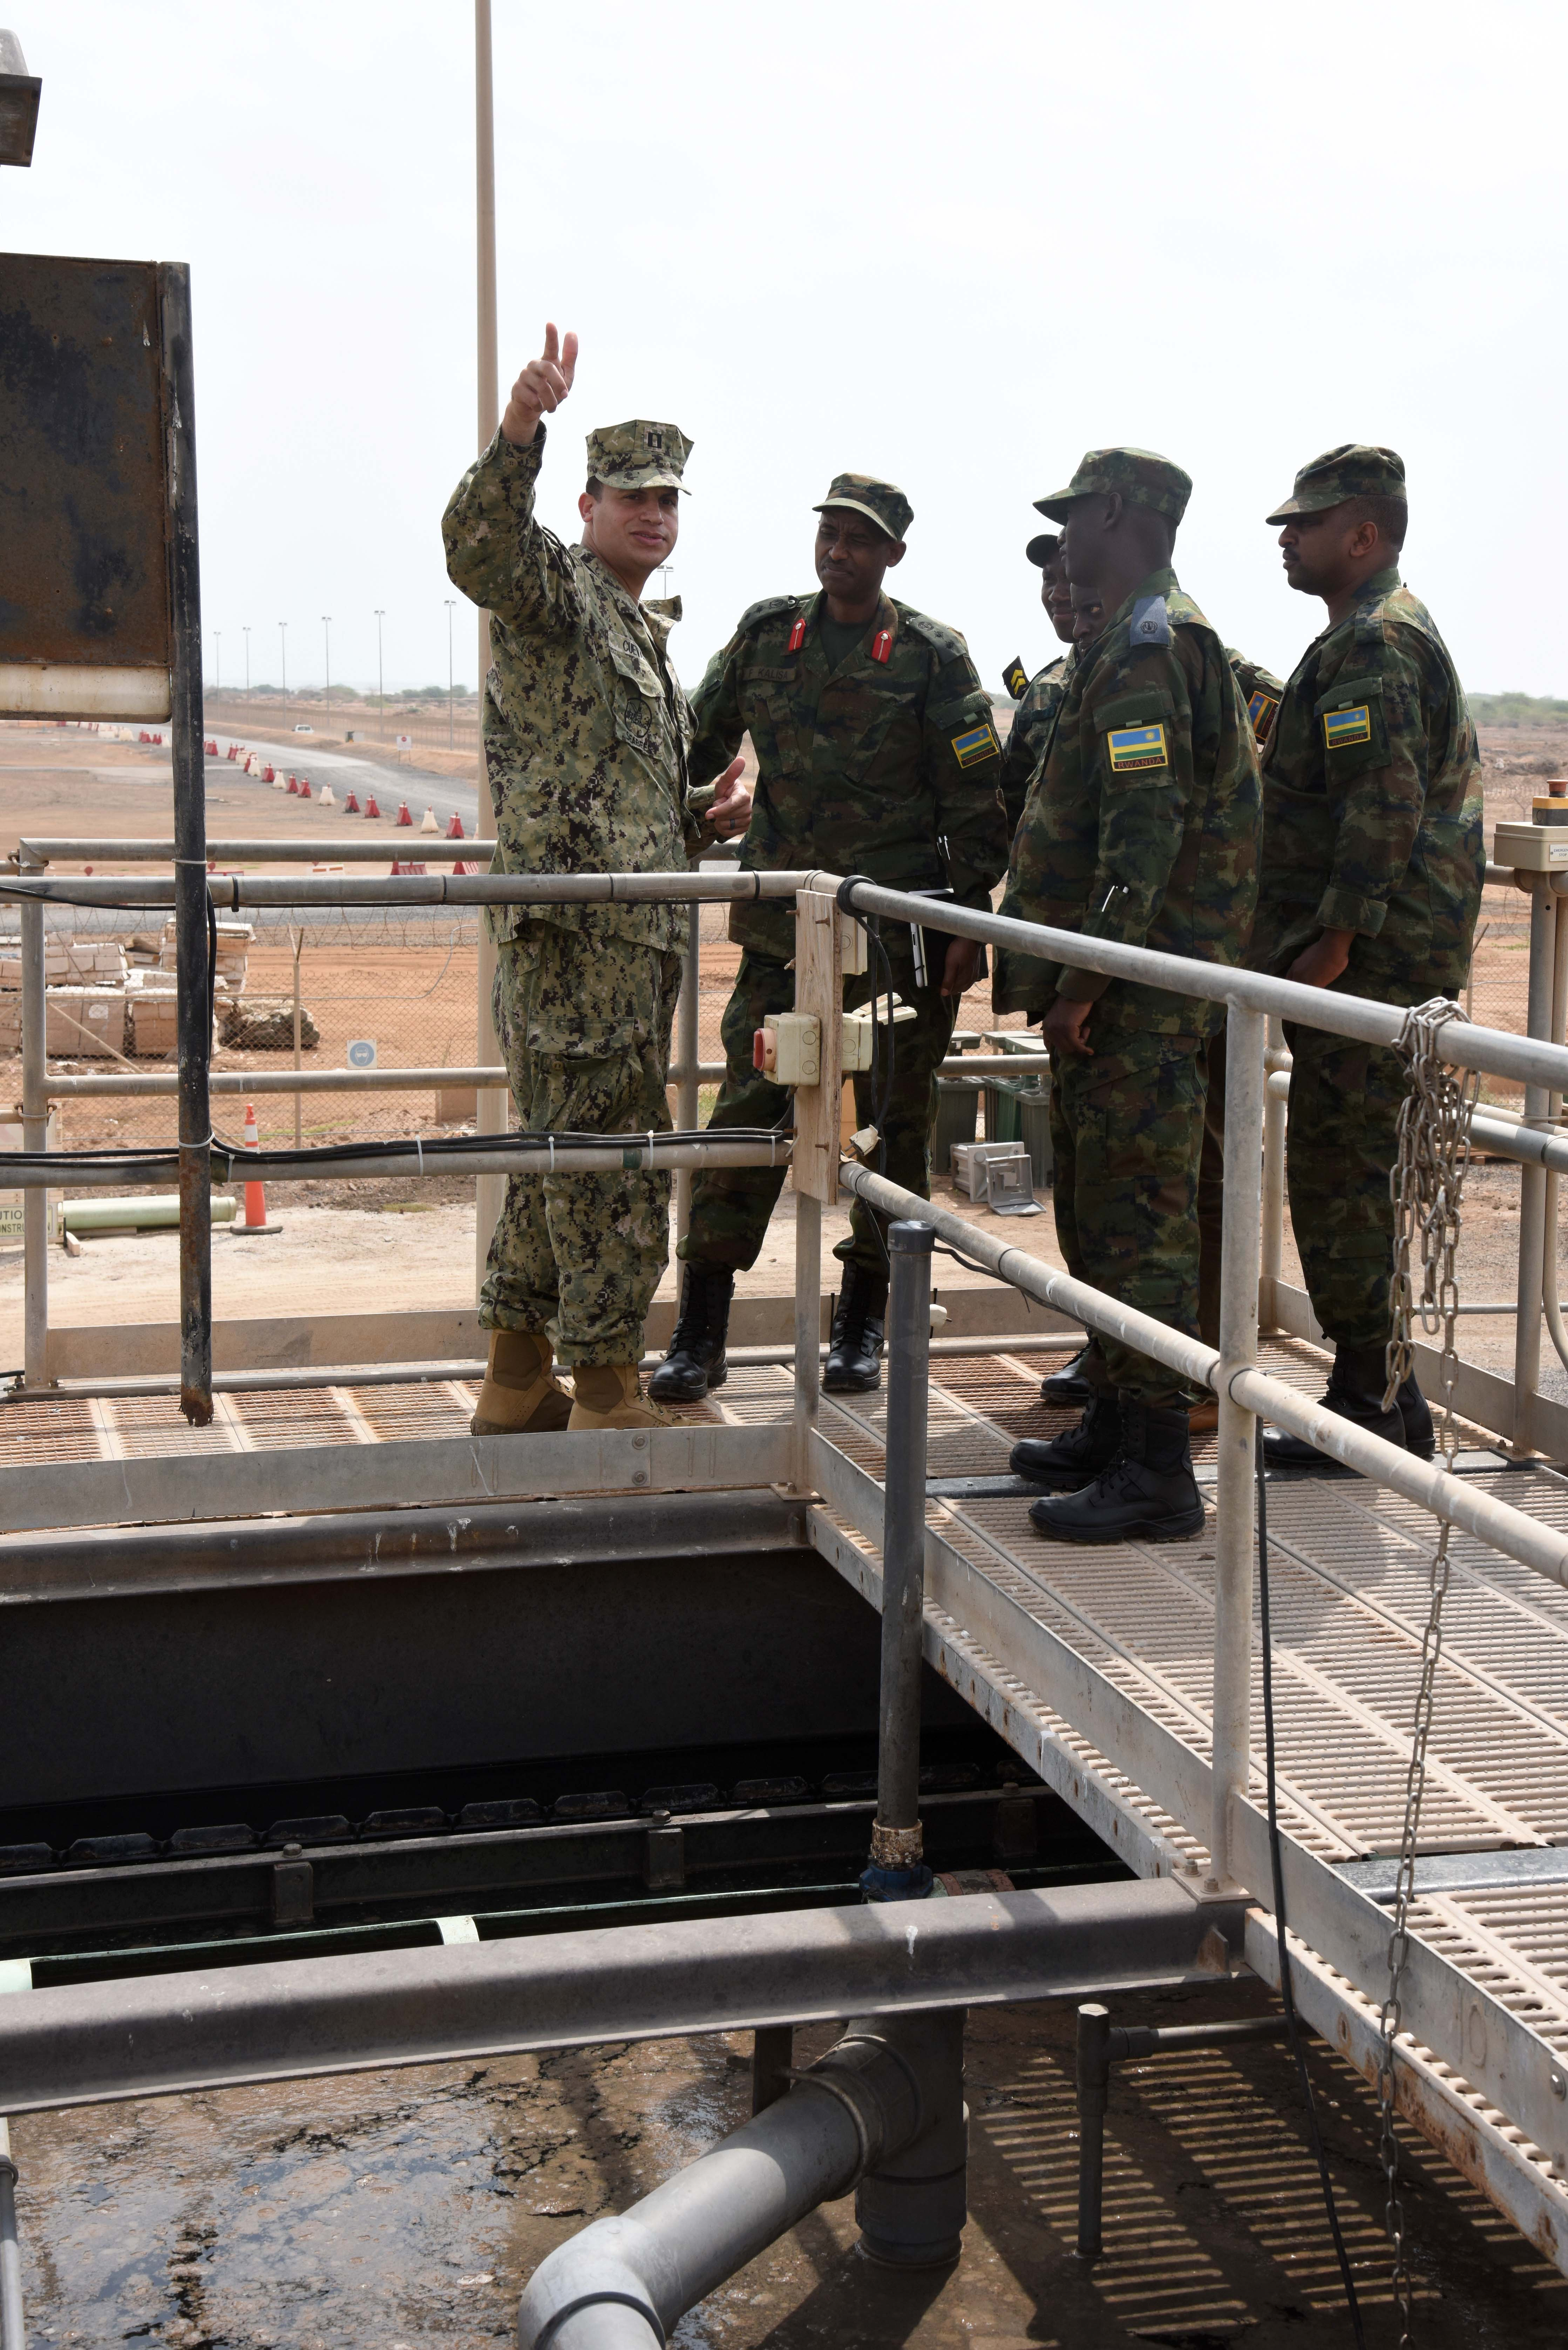 U.S. Navy Lt. Raul Cuevas, Camp Lemonnier Public Works Department civil engineer corps officer, points out the different sections of the sewage treatment facility to Rwanda Defence Force engineers at Camp Lemonnier, Djibouti, Feb. 23, 2016. RDF members received a tour of essential utilities for an expeditionary camp so they could see the application of prior base planning lessons shared by Combined Joint Task Force-Horn of Africa engineers. (U.S. Air Force photo by Staff Sgt. Victoria Sneed)